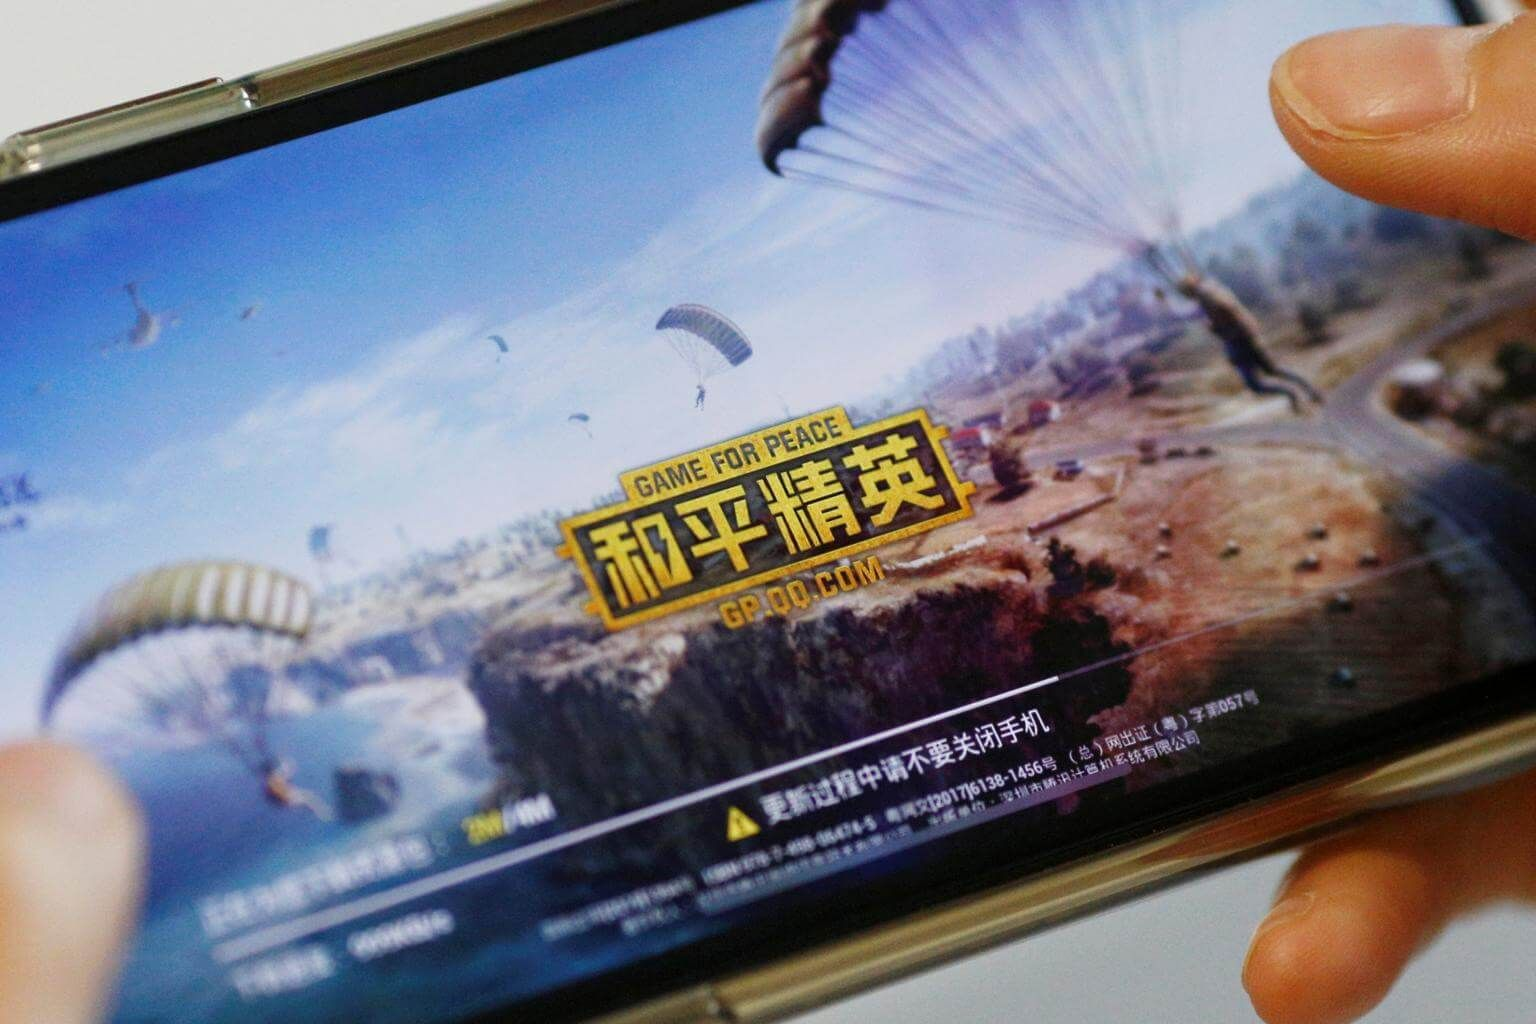 No chicken? Tencent's PUBG stand-in leaves gamers fuming, Consumer